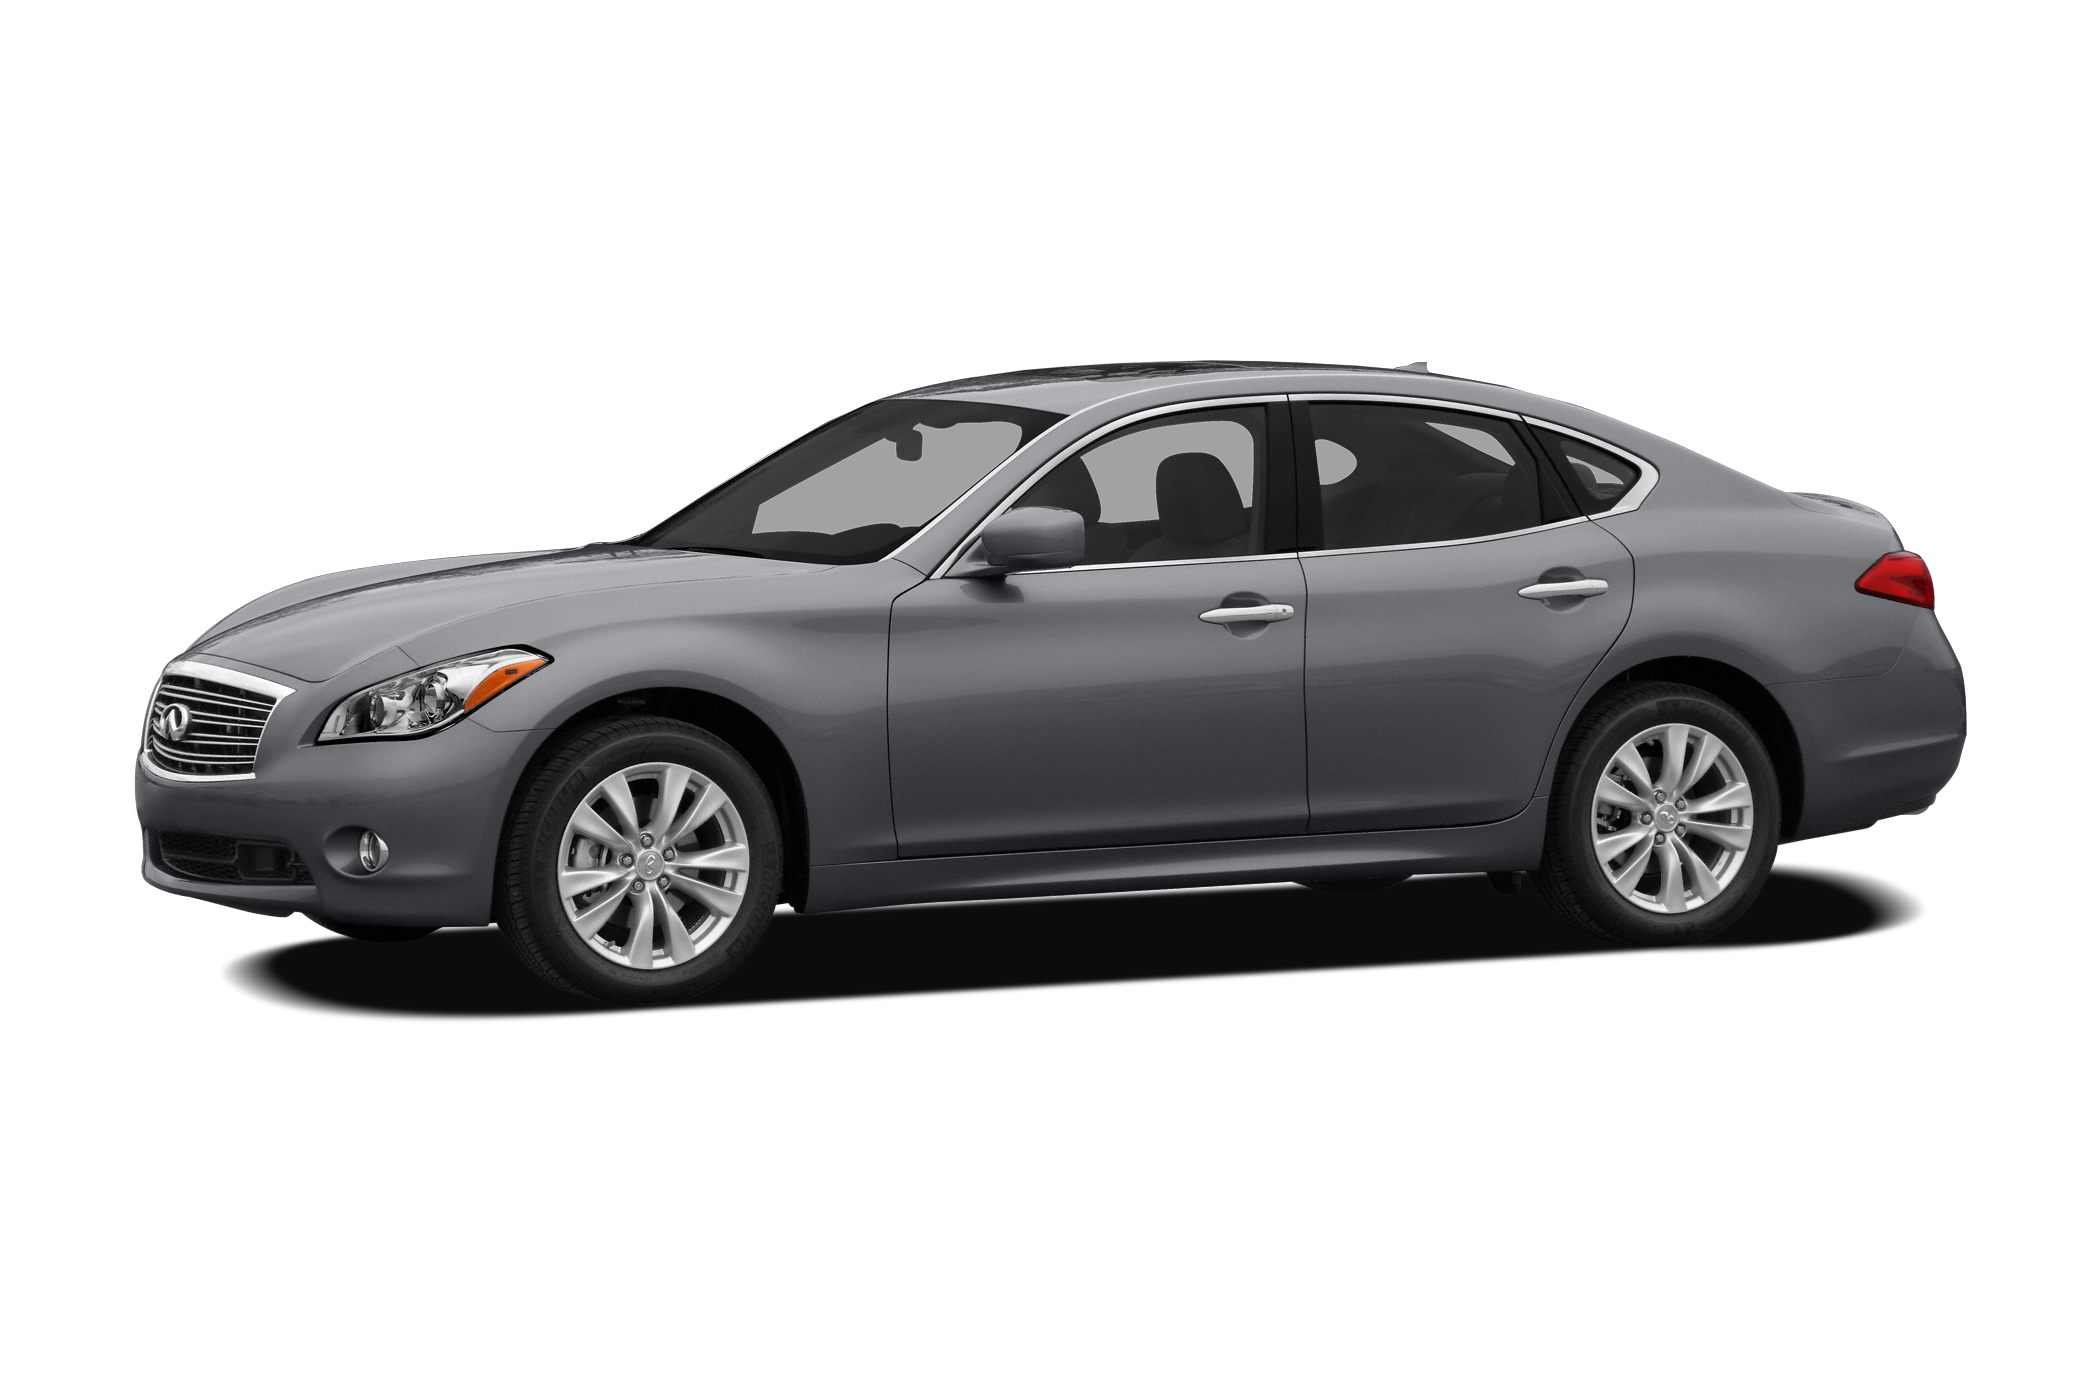 2011 Infiniti M37 X Sedan for sale in Uniontown for $28,995 with 45,705 miles.